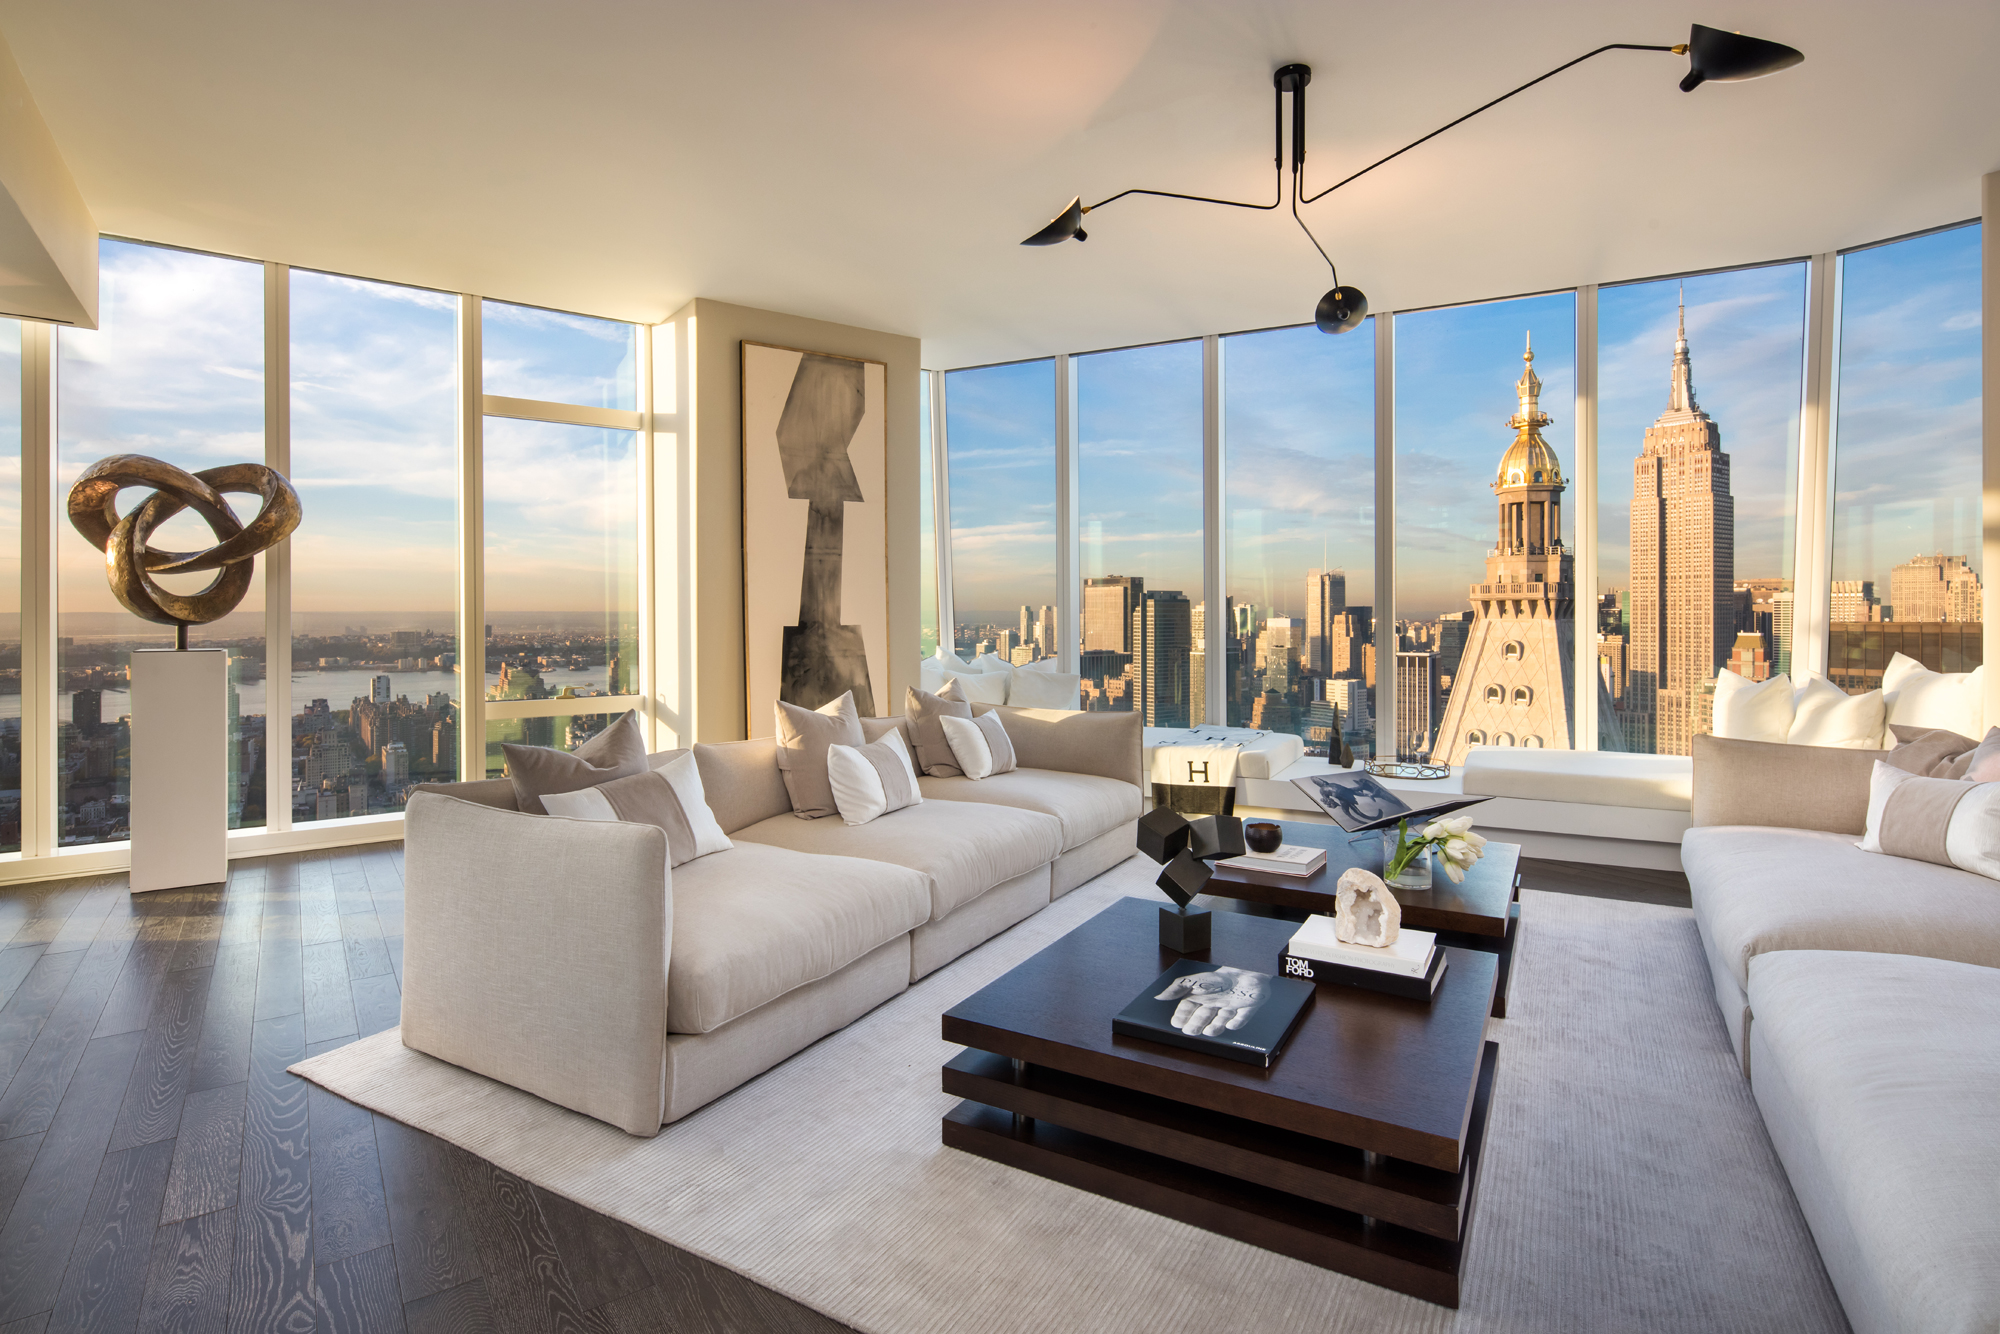 Best Of The Week 9 Instagrammable Living Rooms: Million Dollar Listing New York